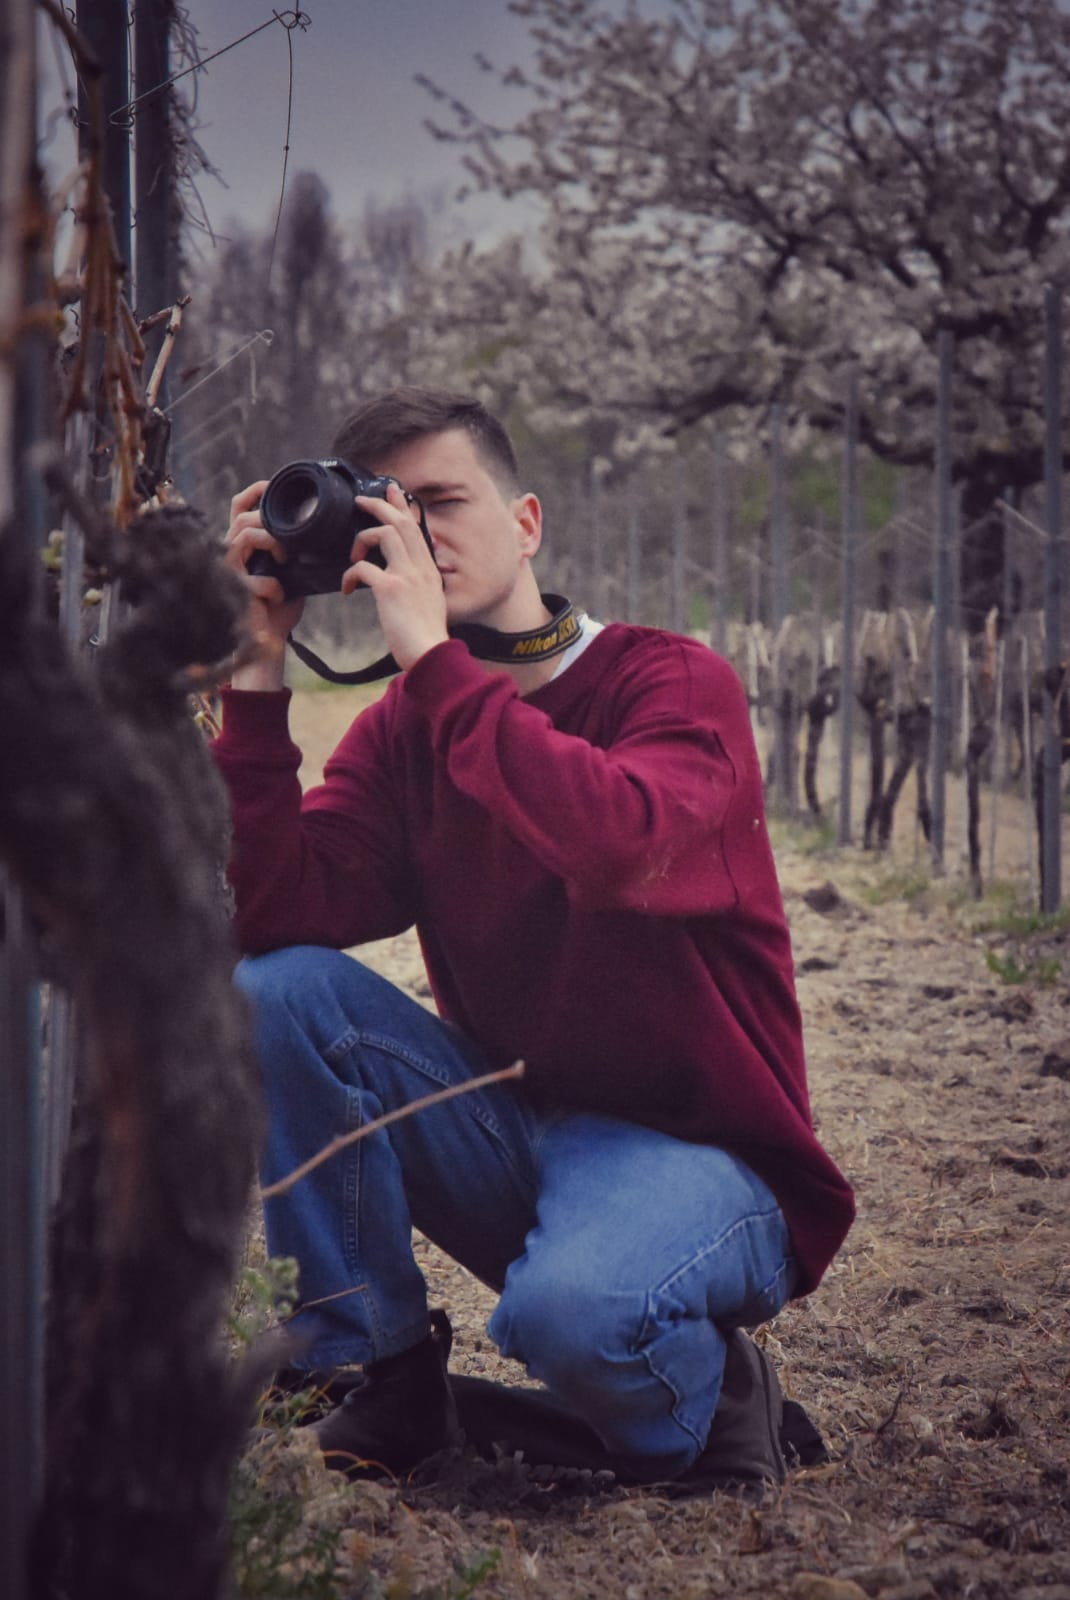 Taking photos in amongst the vineyards of the Monferrato hills, a beautiful wild region of impenetrable forests and cute hilltop villages sidelined by the success of the Langhe. Credit @_shapeless_dude_